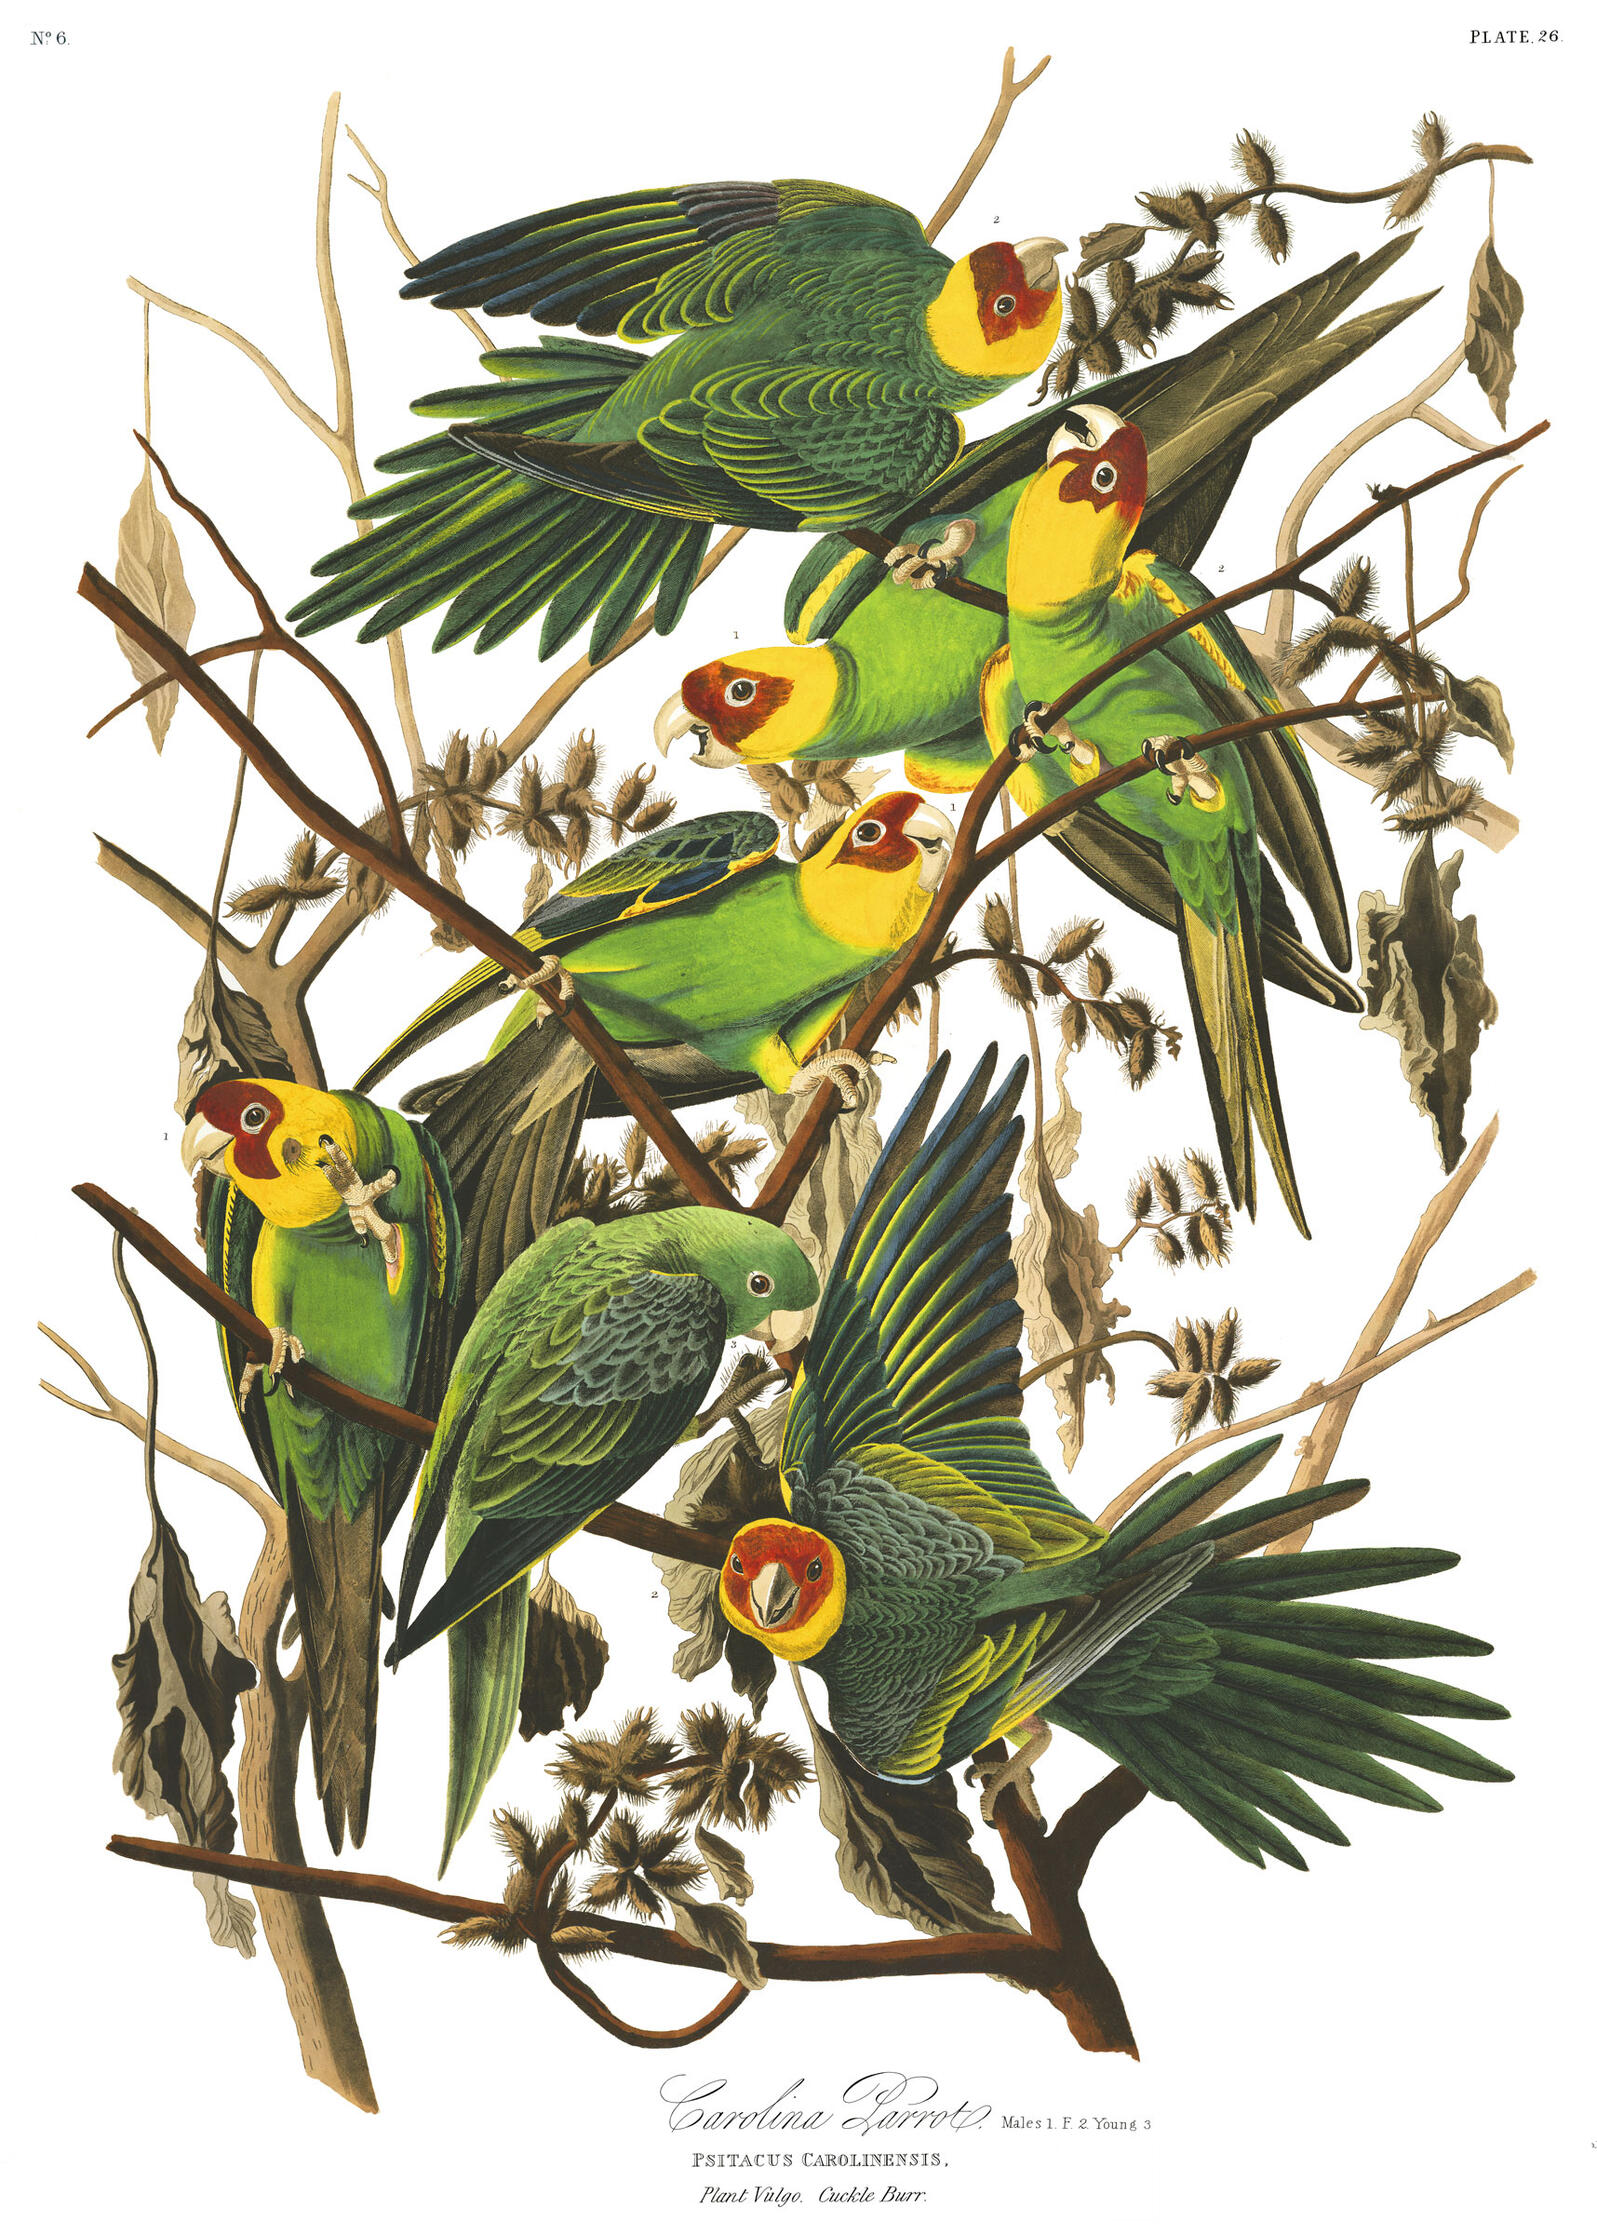 Carolina Parakeets were the only native parrot species in the U.S. But by the early 1900s, the vibrant birds were no more. Illustration: John James Audubon